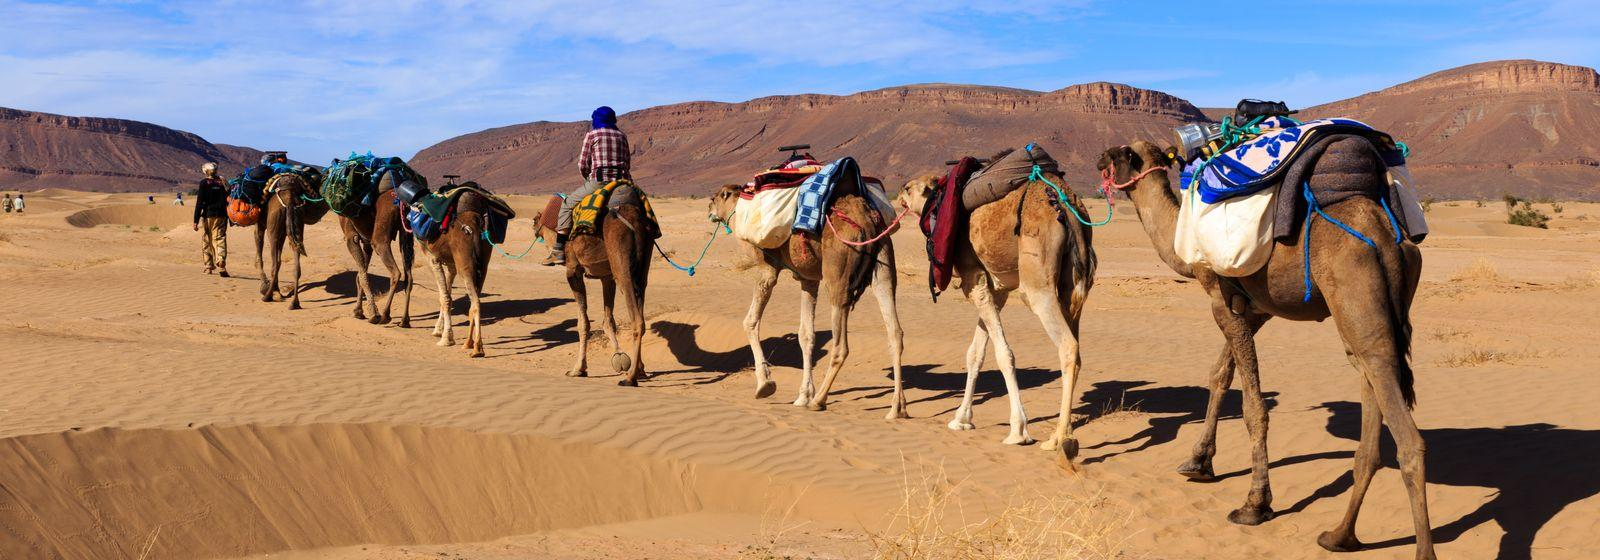 Explore the Magic of Morocco with Local guides